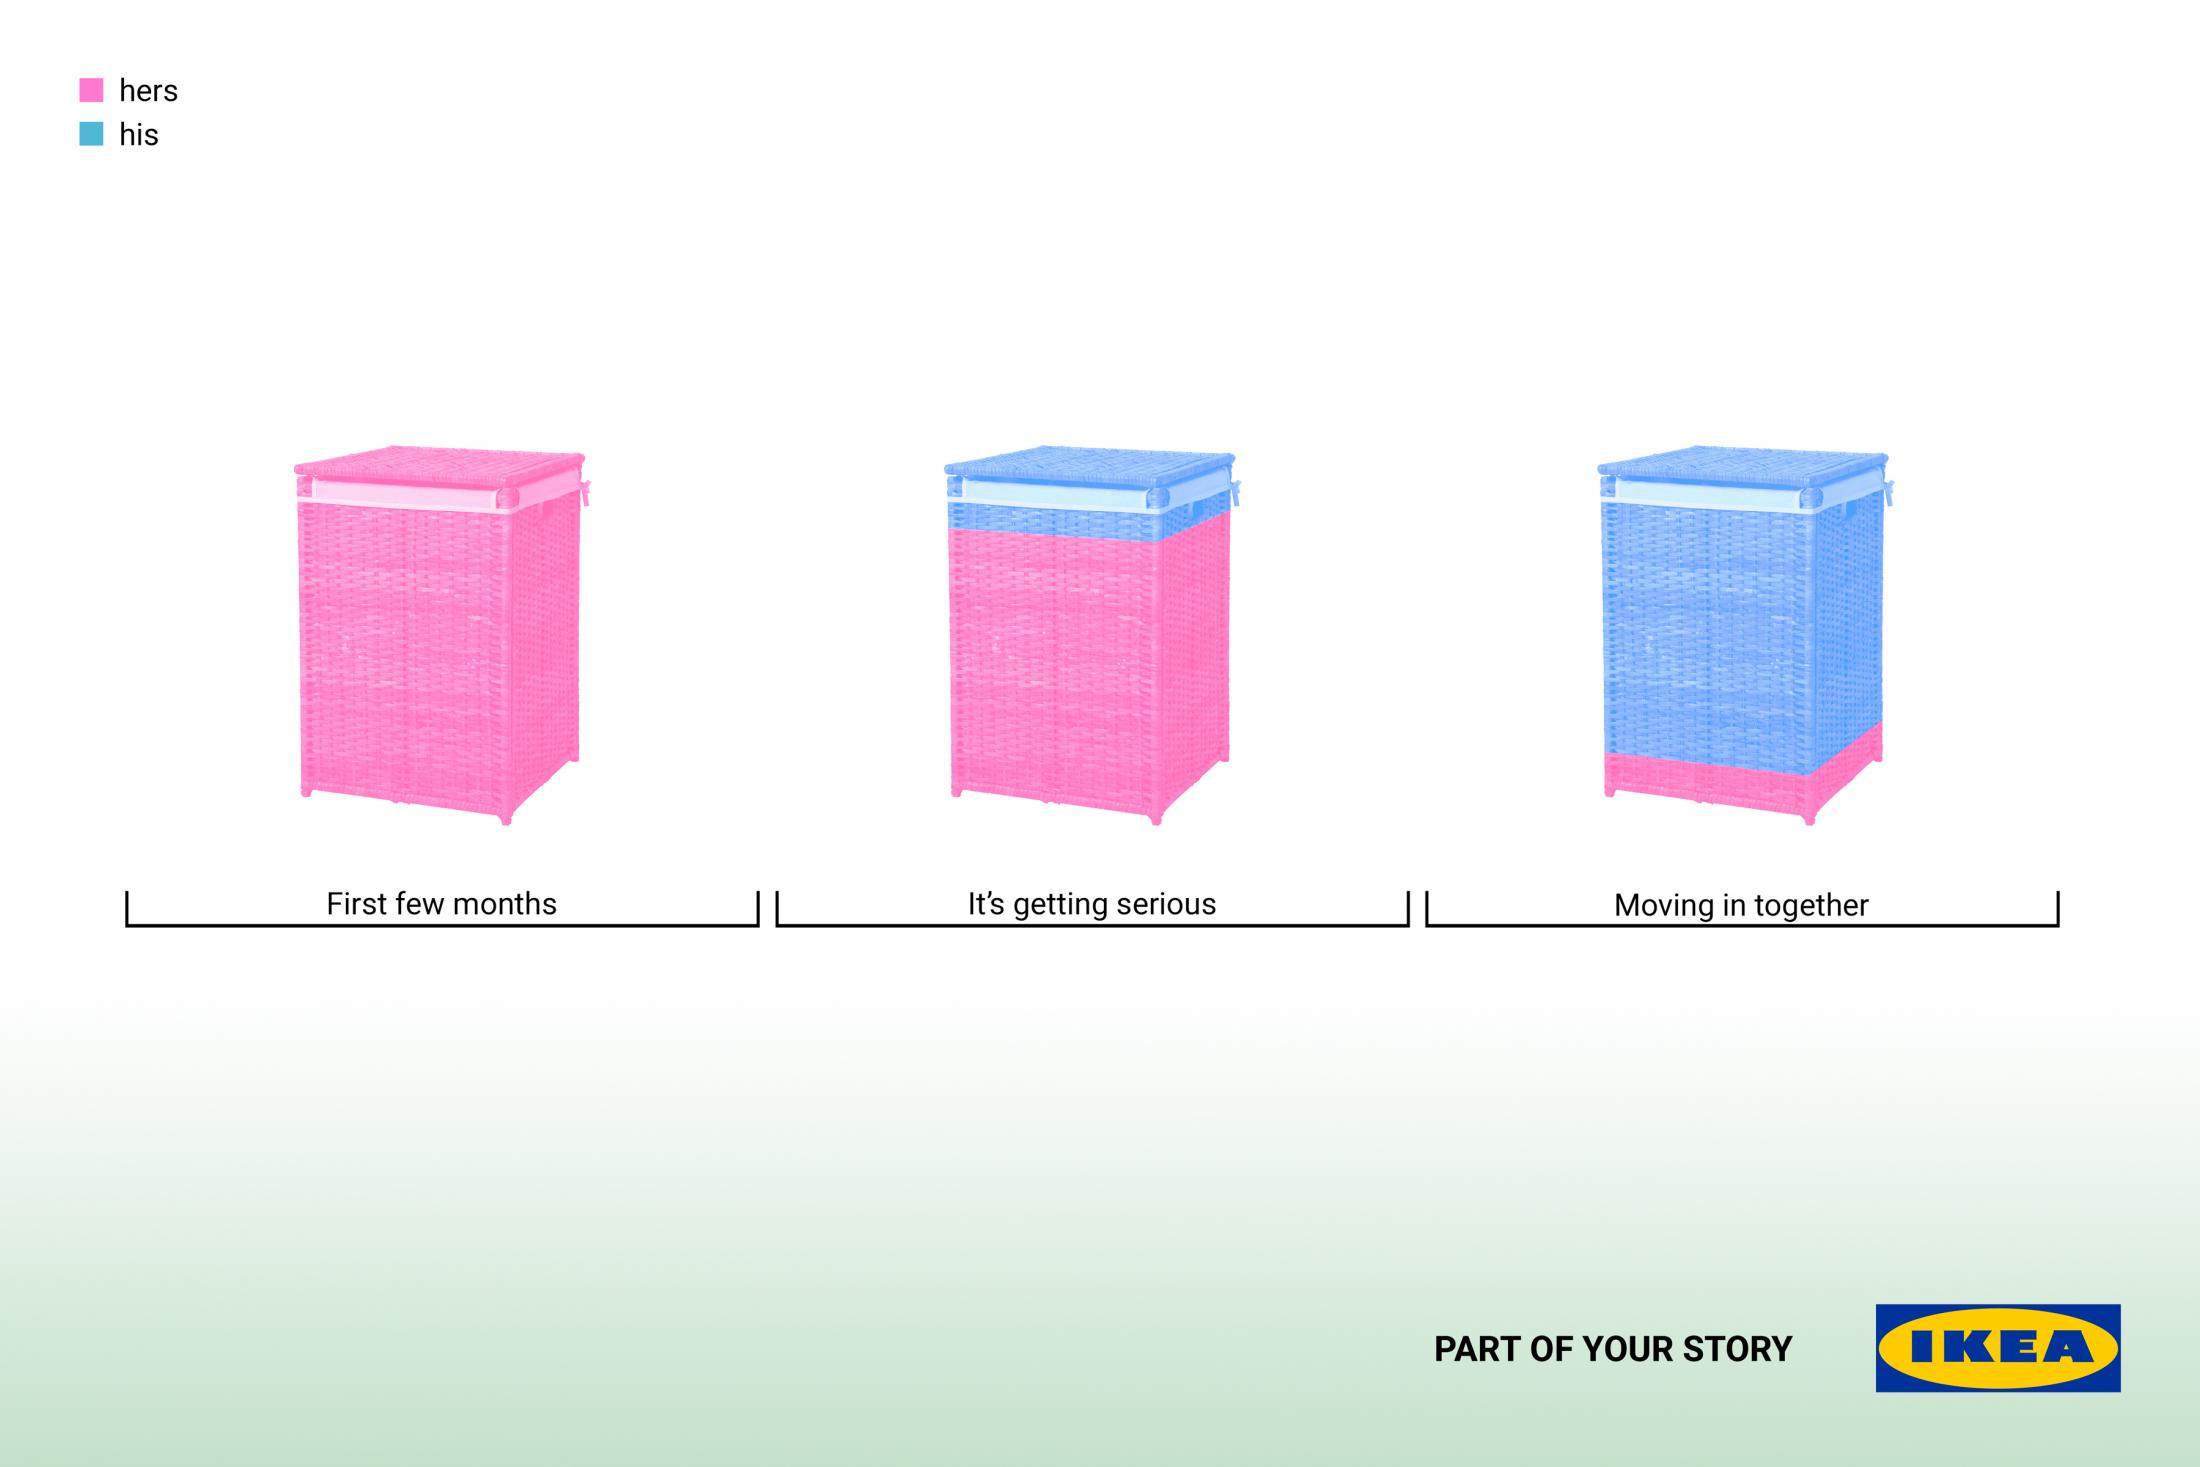 IKEA Print Ad - Part of your story - Laundry